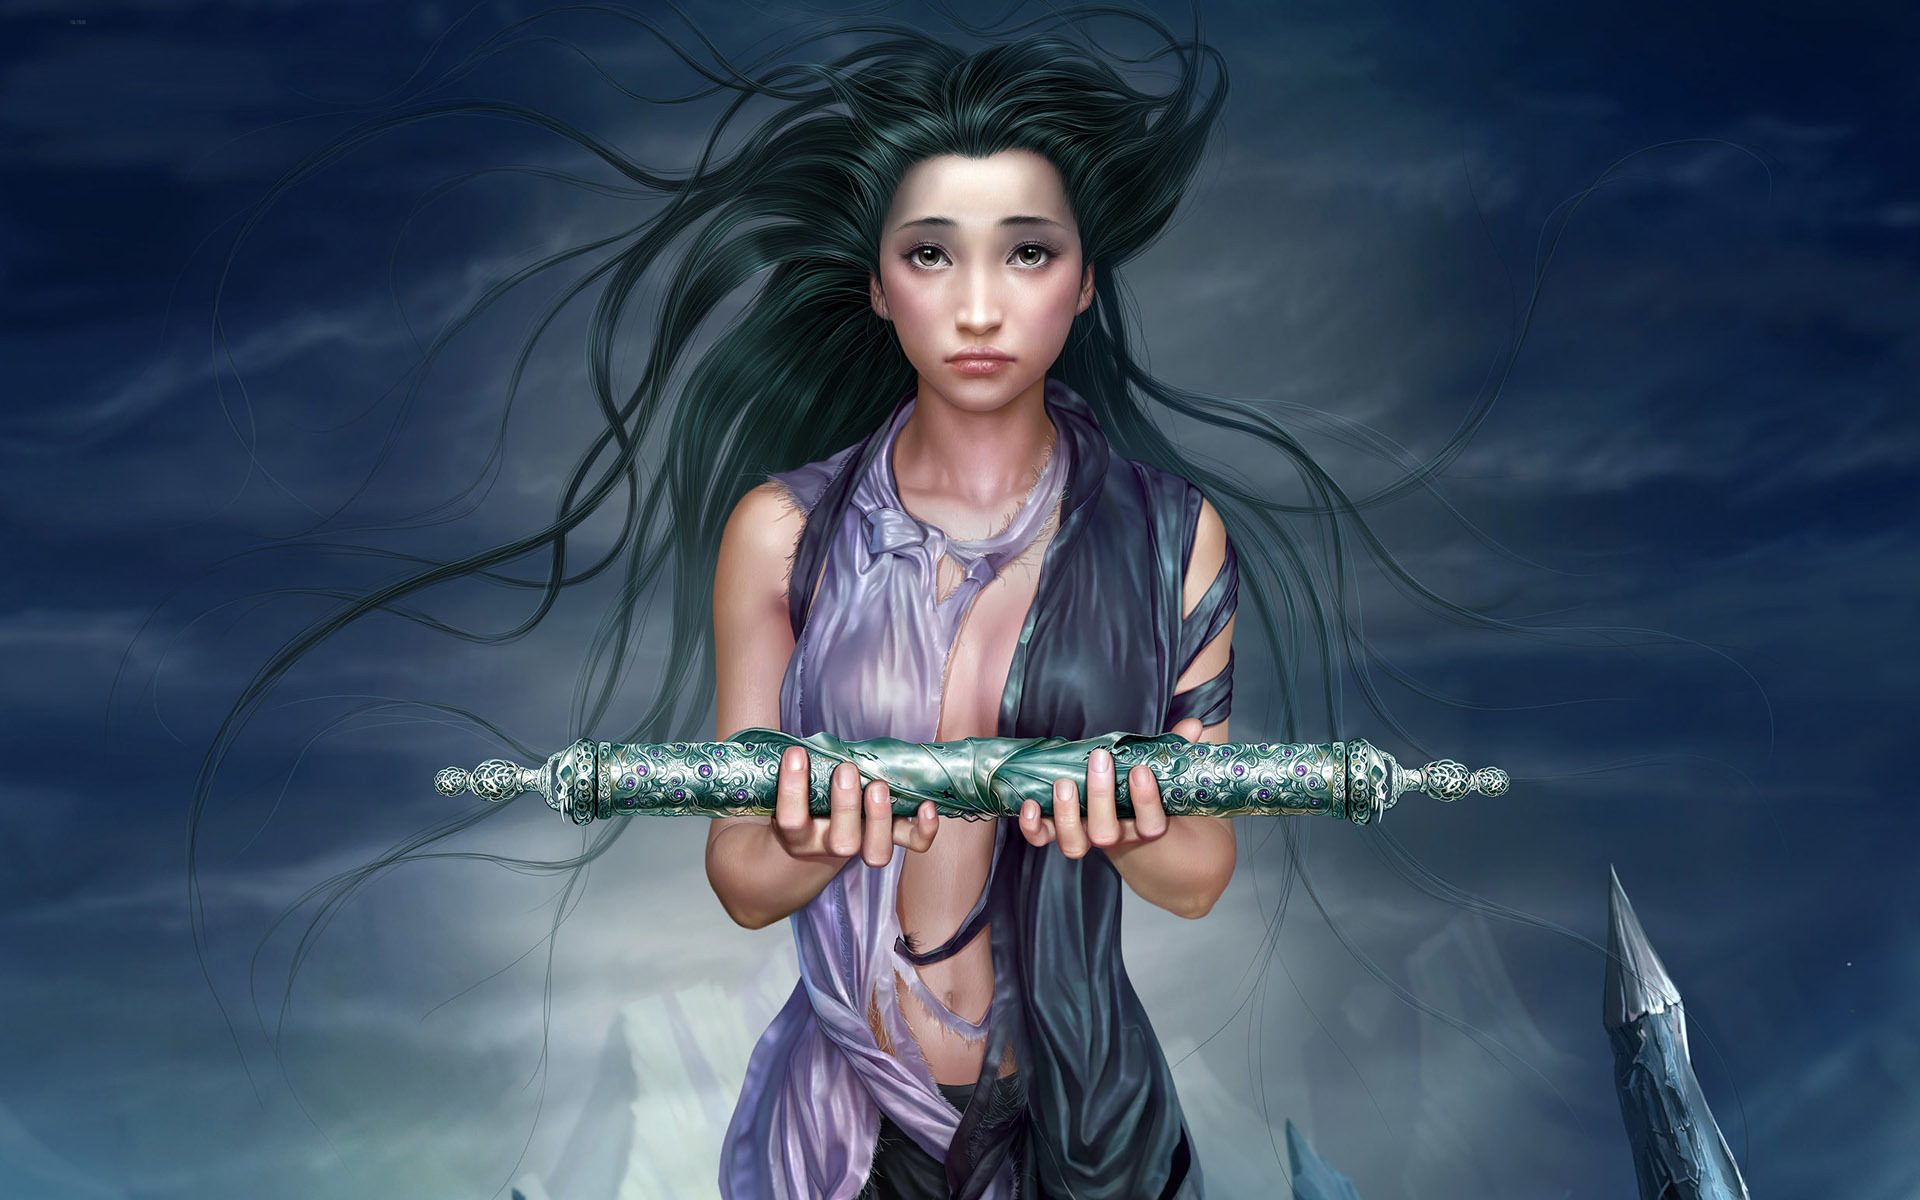 fantasy art asians Yuehui HD Wallpaper